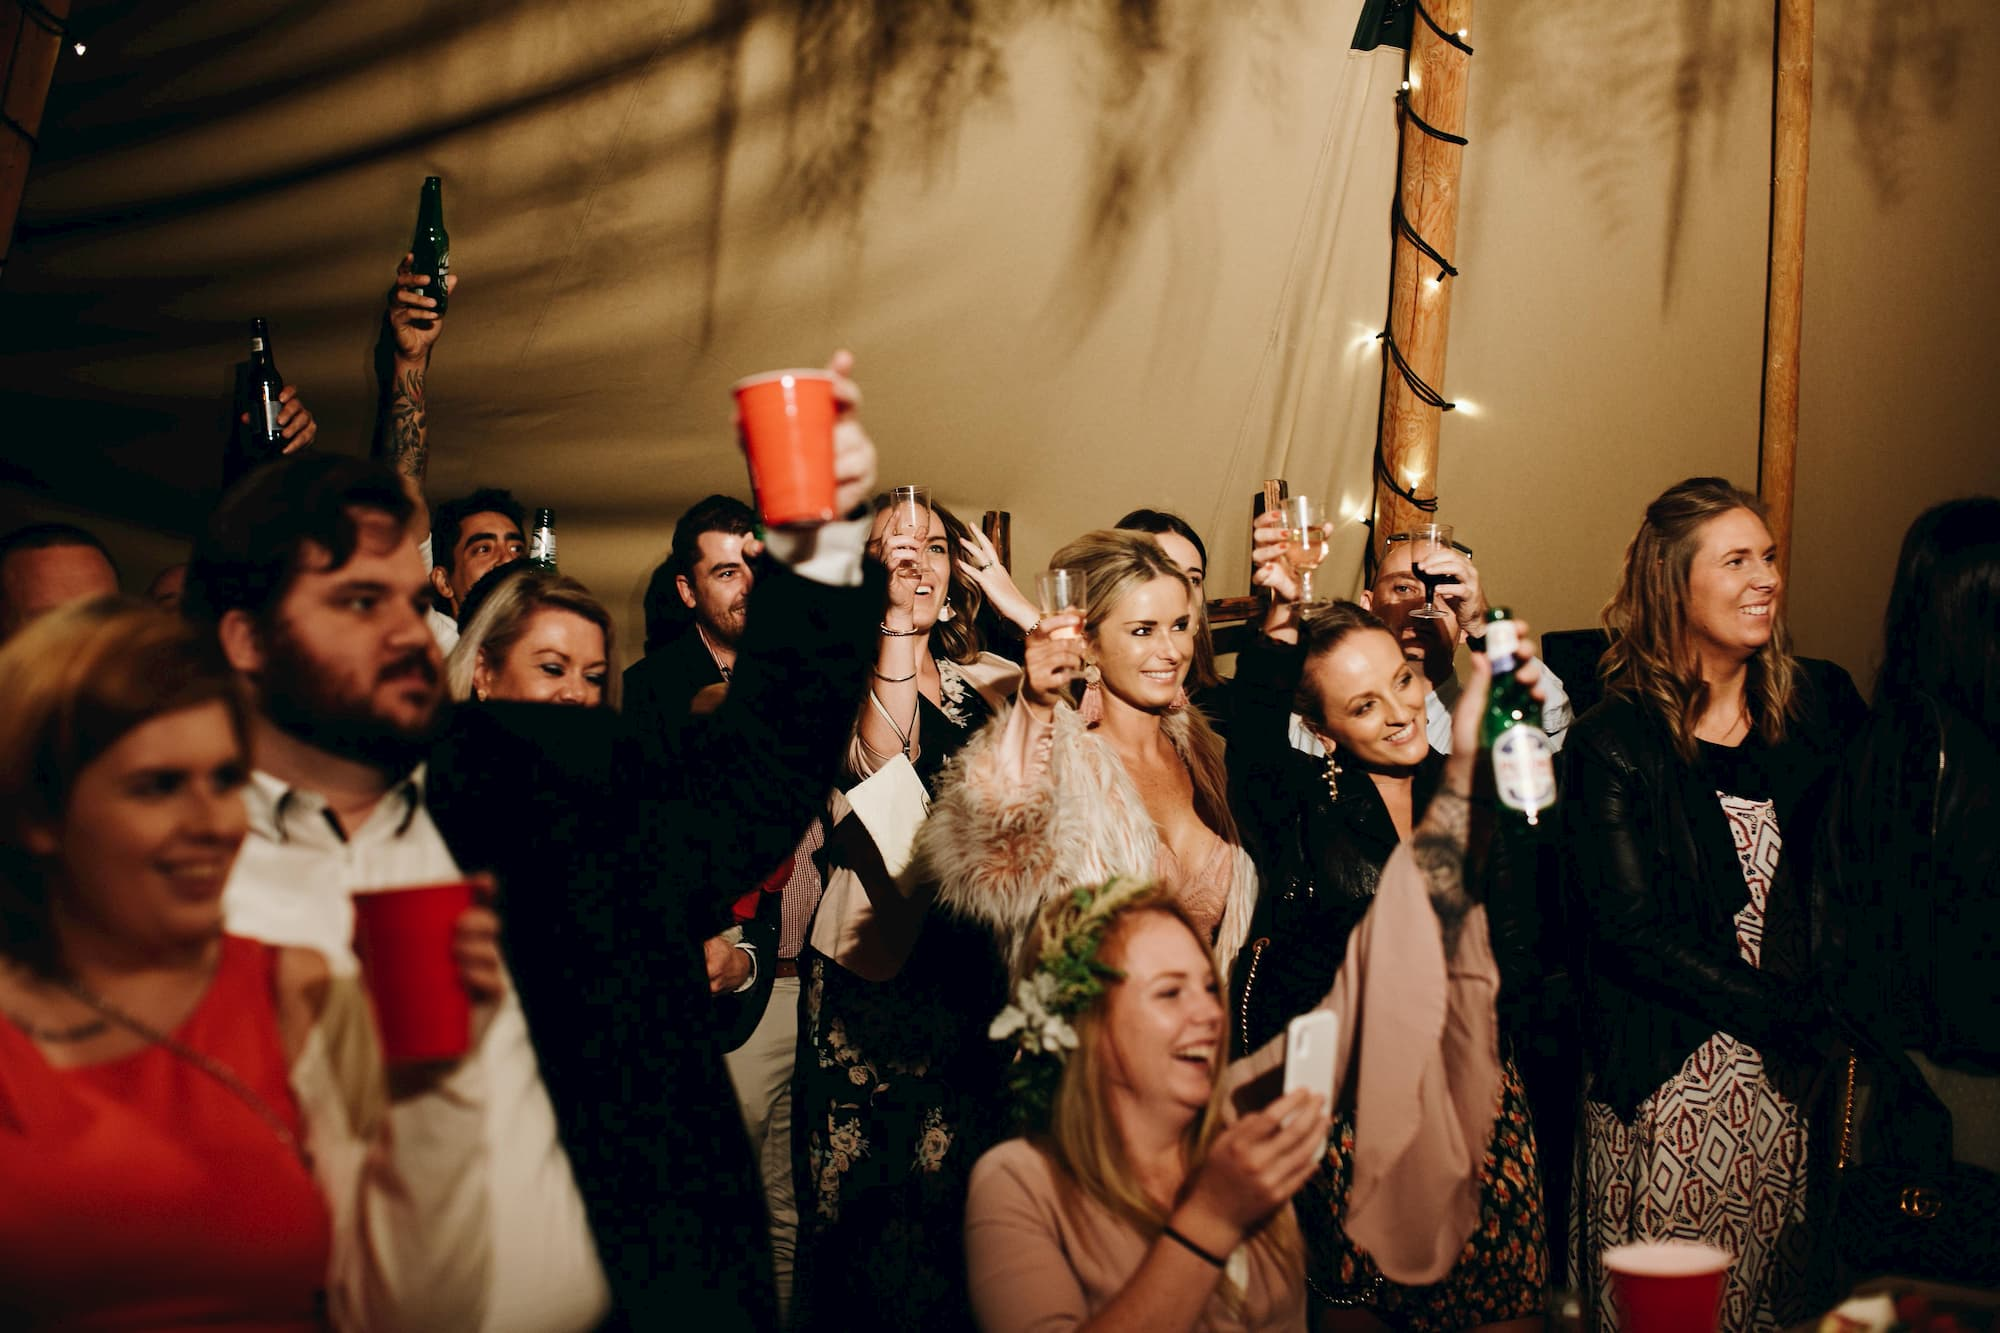 raising a glass at a party